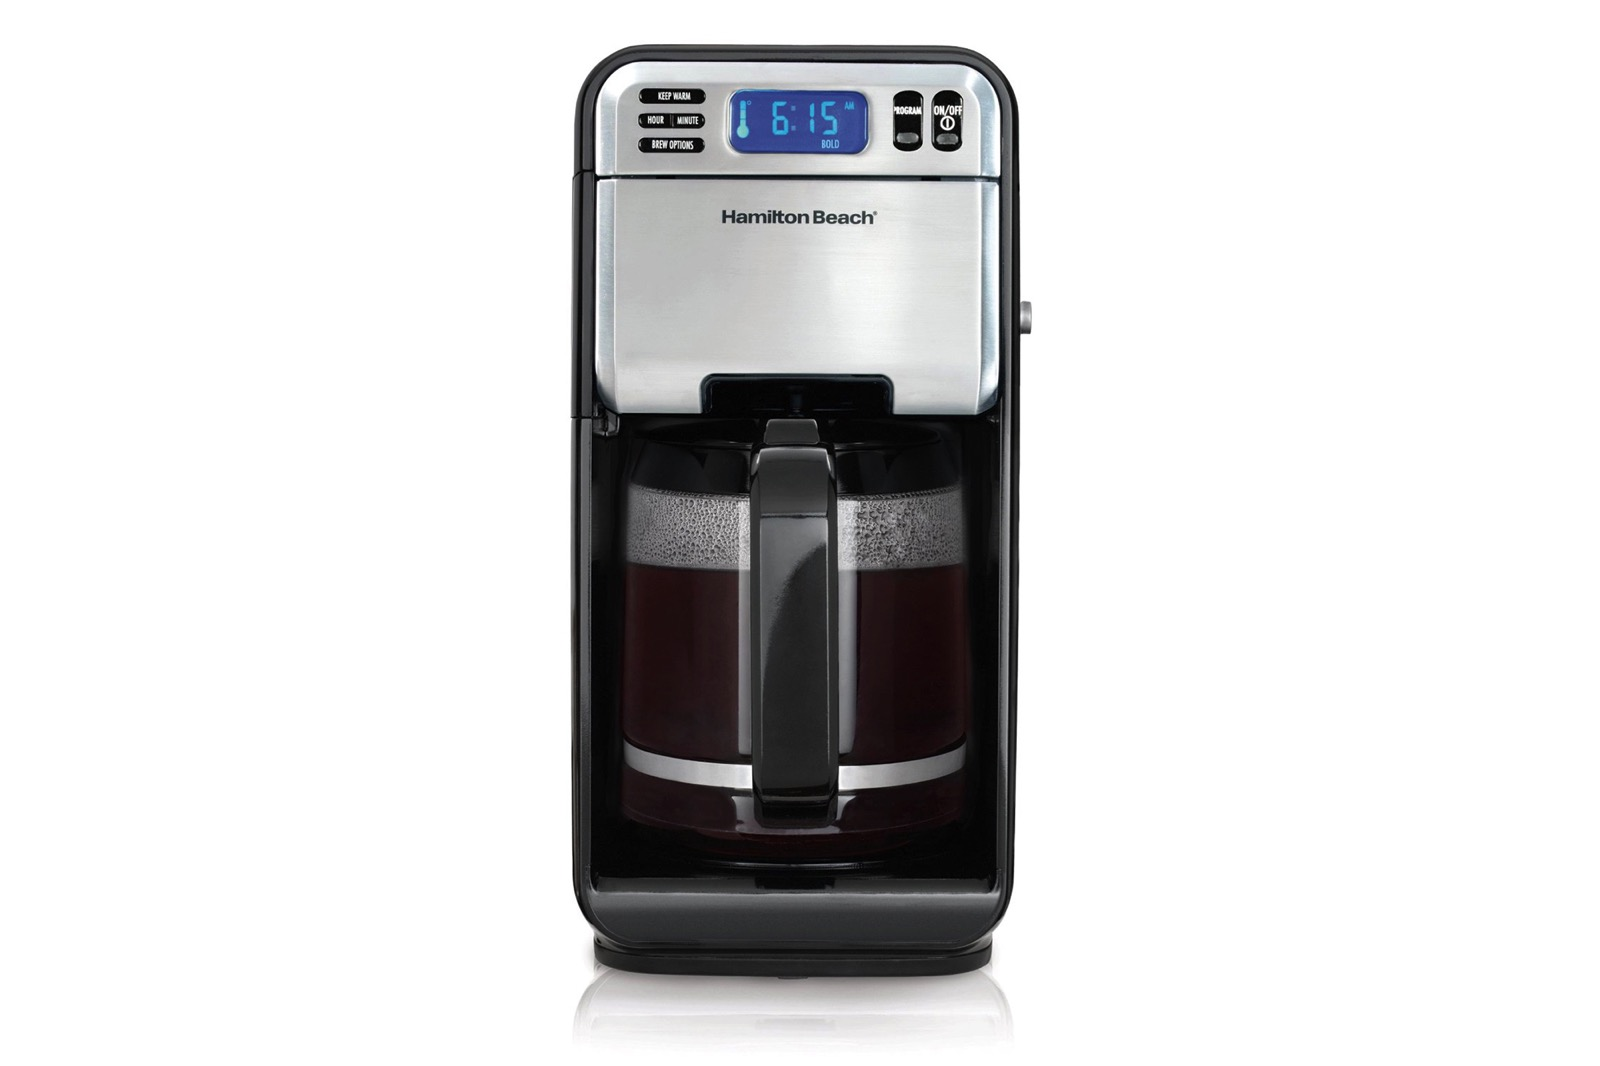 K Cup Coffee Maker Deals : The Wirecutter s best deals: Save USD 50 on a Nespresso coffee maker